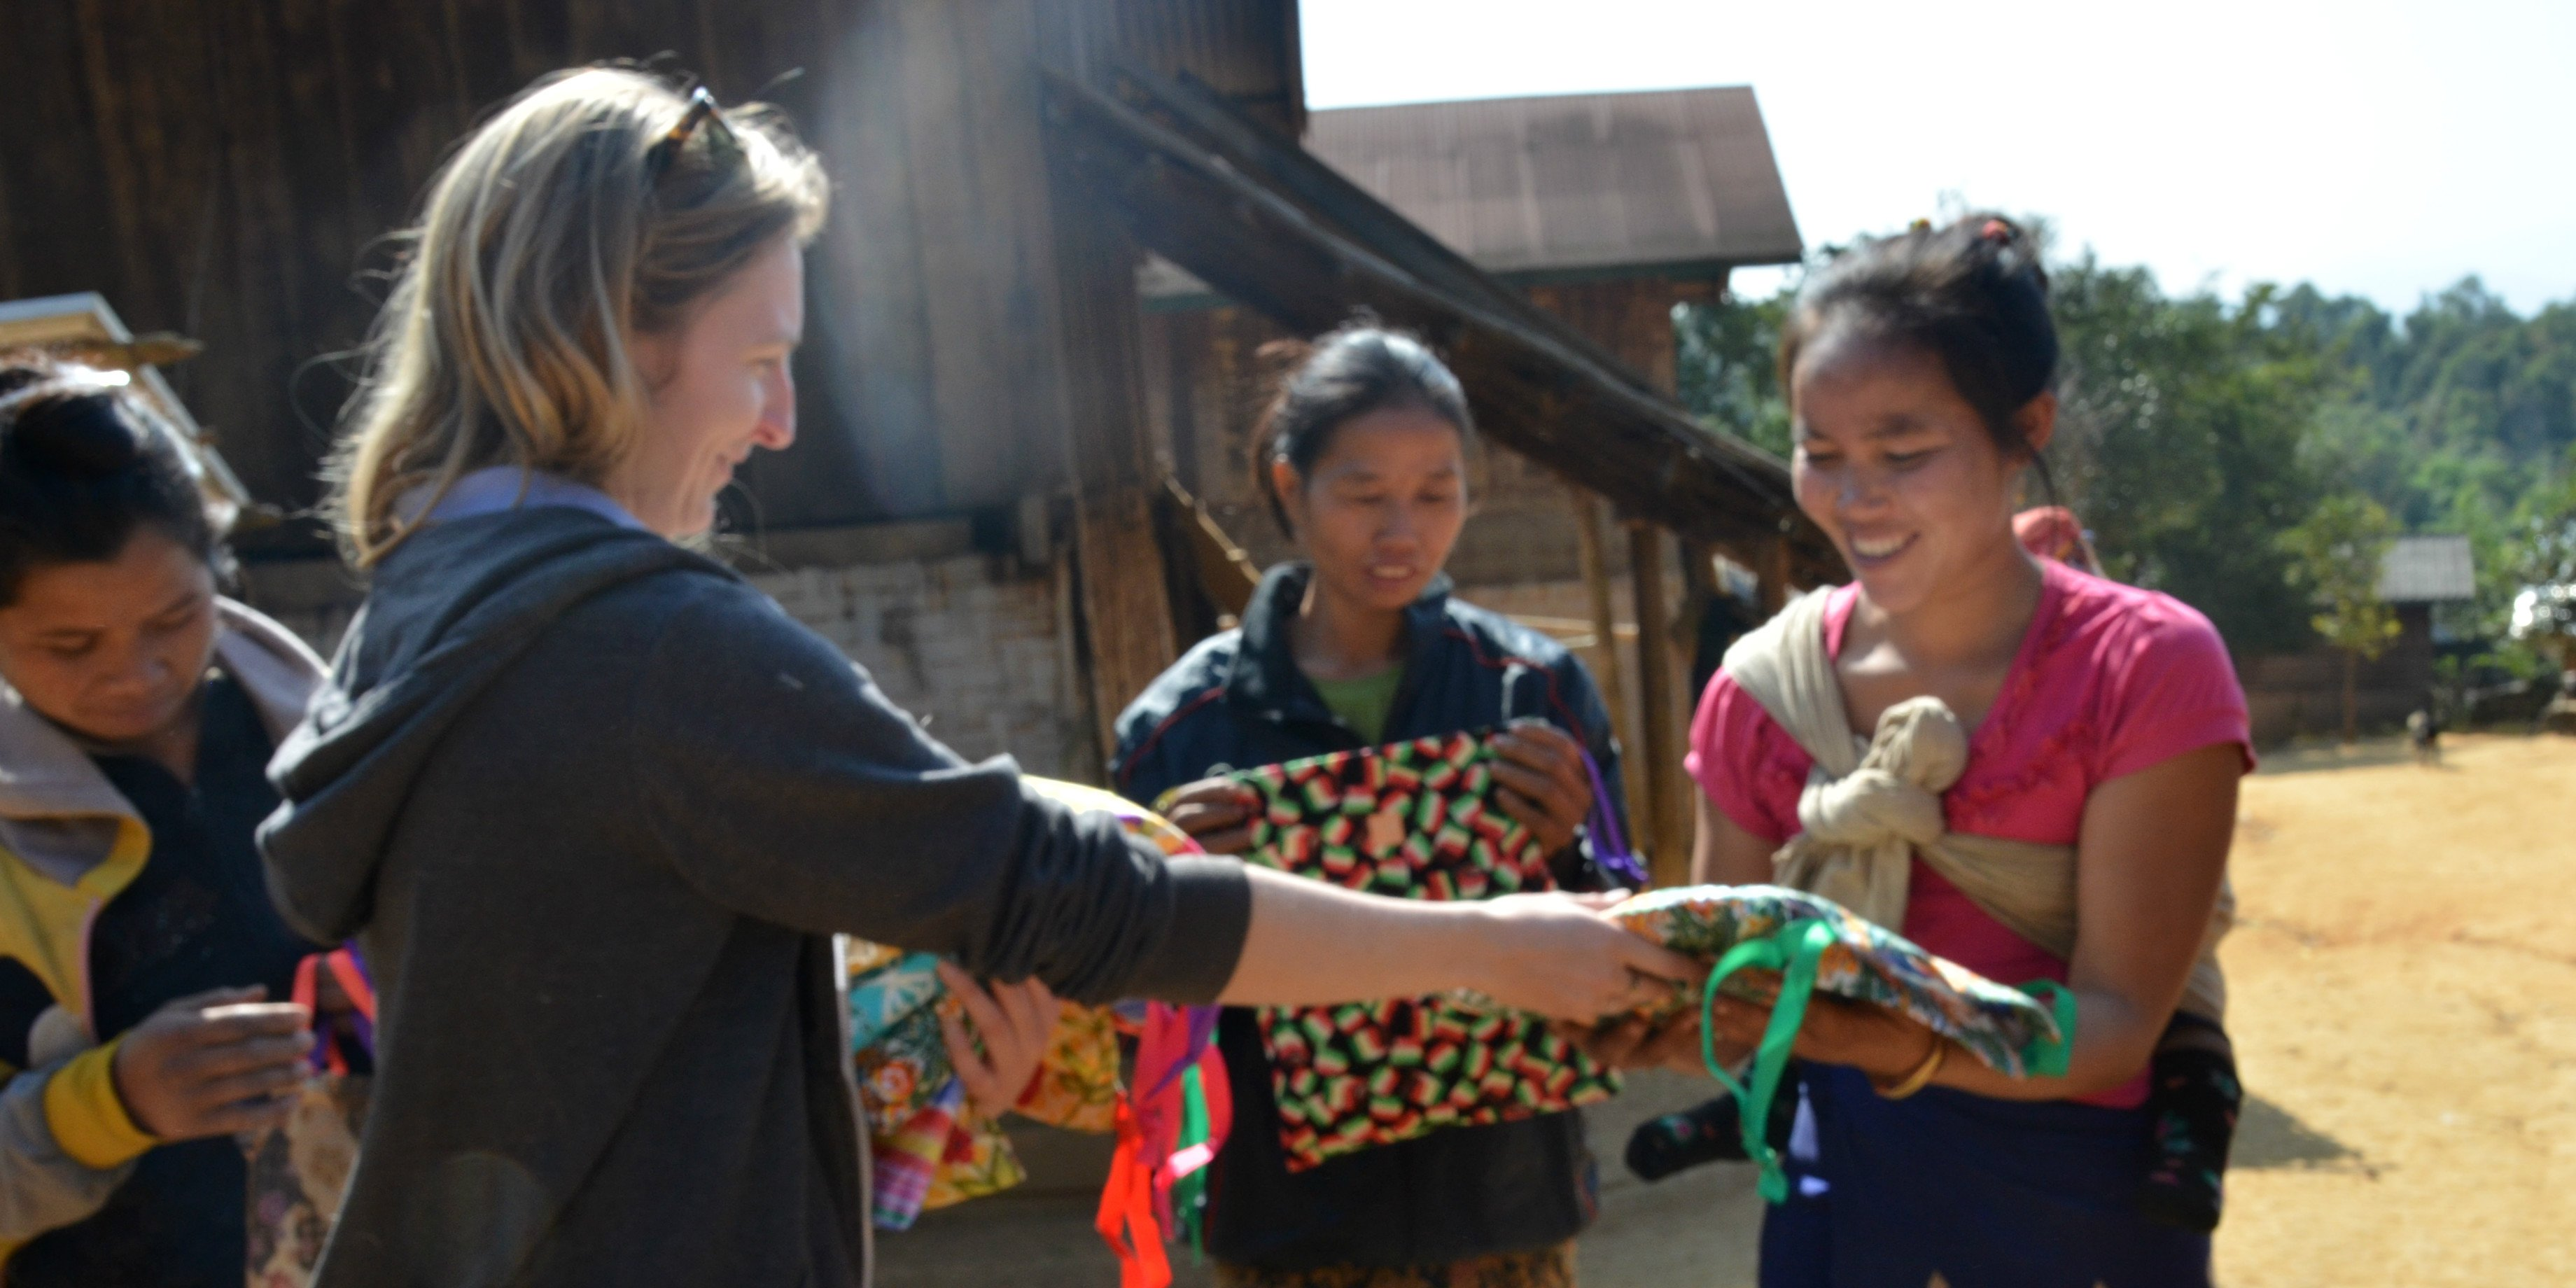 A GVI participant helps disseminate Days for Girls menstrual health kit at a menstrual health workshop.